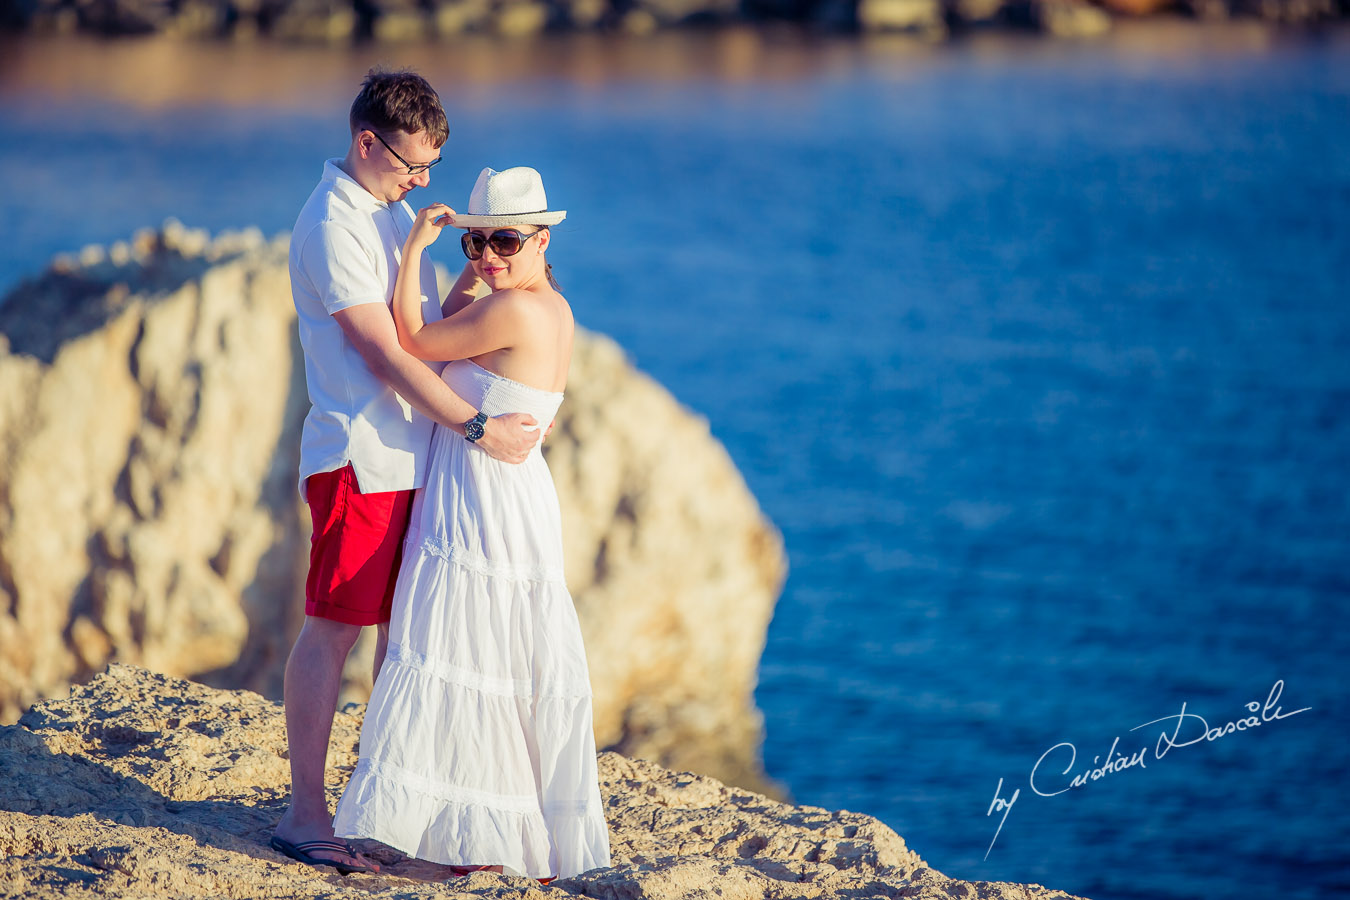 Photo Shoot in Cyprus - Anna & Konstantin in Protras, Cyprus